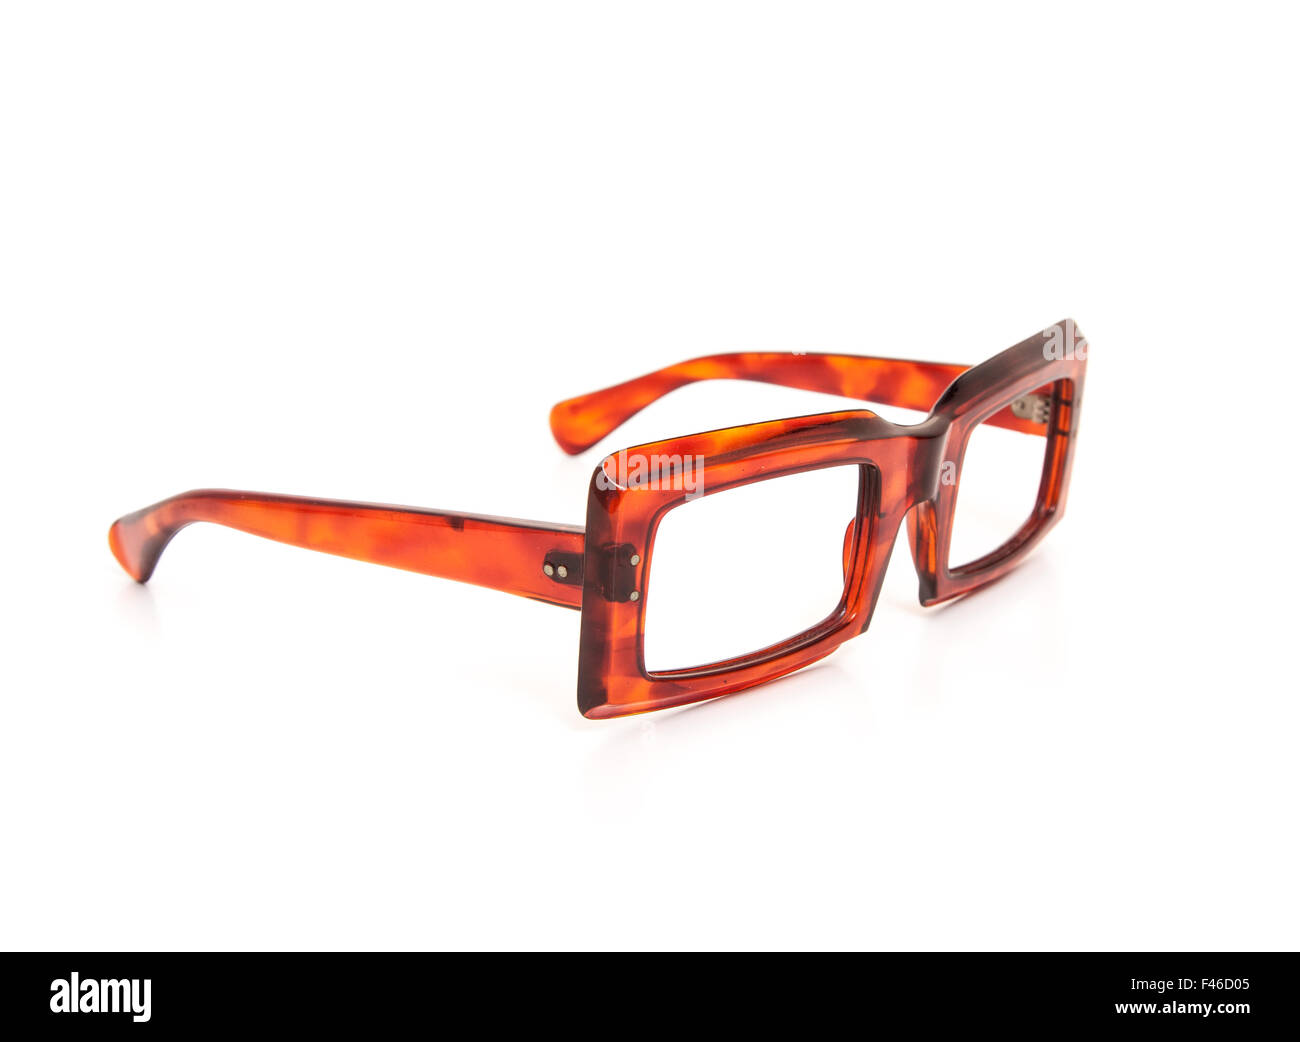 Old fashioned horn-rimmed specs. All on white background. - Stock Image